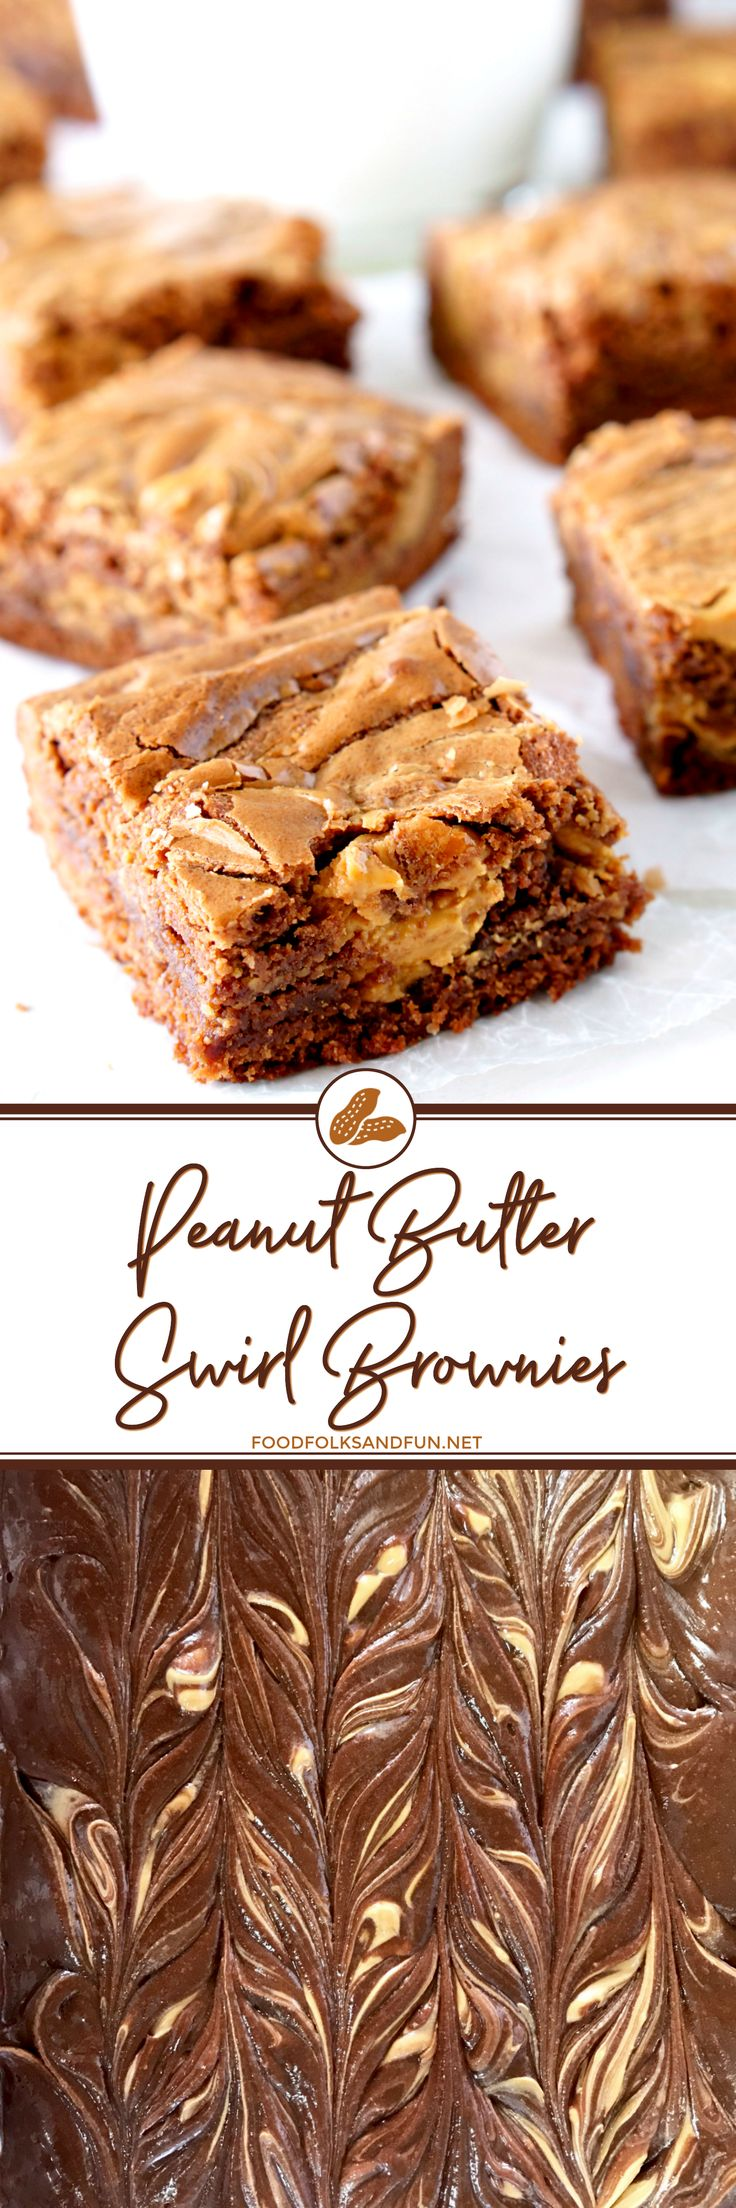 This Peanut Butter Swirl Brownie Recipe is just the thing when you're craving a little chocolate and peanut butter. The brownies are rich, fudgy, and they have just the right amount of peanut butter!